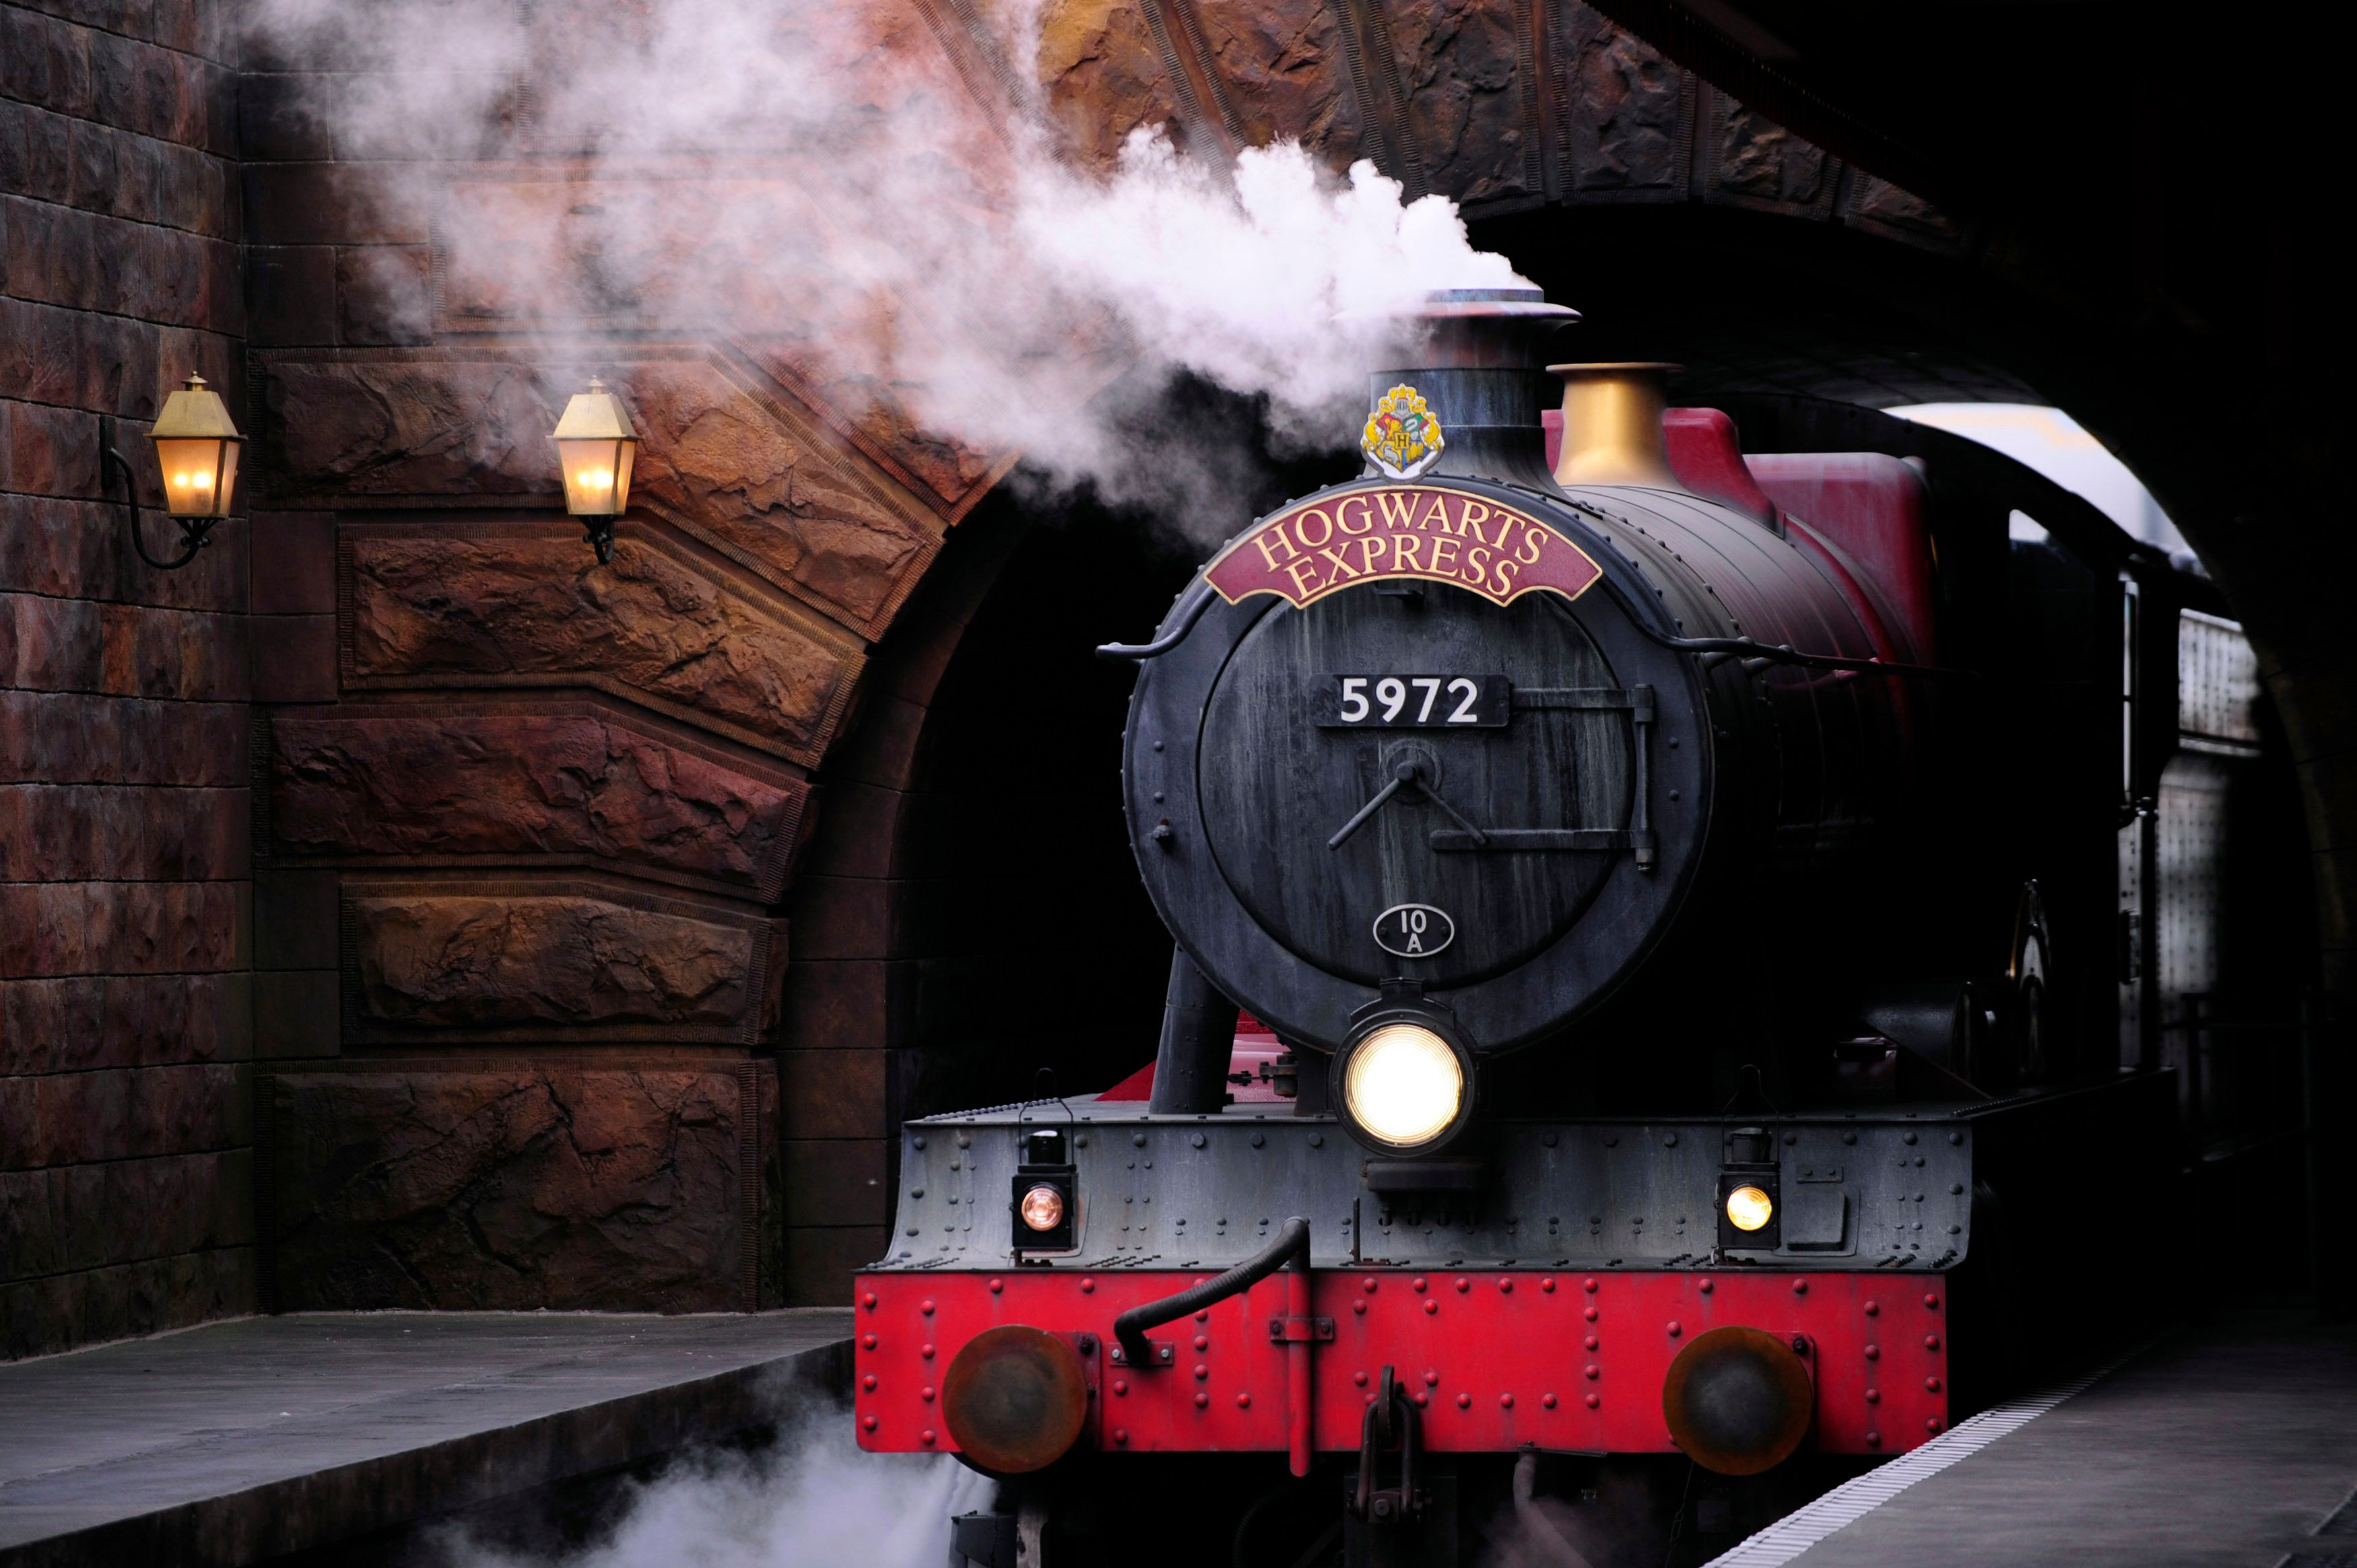 The Hogwarts Express train, which connects the Universal Studios with neighboring Islands of Adventure, pulls into the Hogsmeade Station during a media preview for The Wizarding World of Harry Potter-Diagon Alley at the Universal Orlando Resort in Orlando, Florida June 19, 2014. The new attraction, which opens to the public on July 8, expands the original Harry Potter world, which opened in 2010 and is modeled after Hogsmeade Village, which is located near the Hogwarts School of Witchcraft and Wizardry where the series' leading character Harry Potter begins his magical adventures. REUTERS/David Manning  (UNITED STATES - Tags: ENTERTAINMENT BUSINESS SOCIETY)